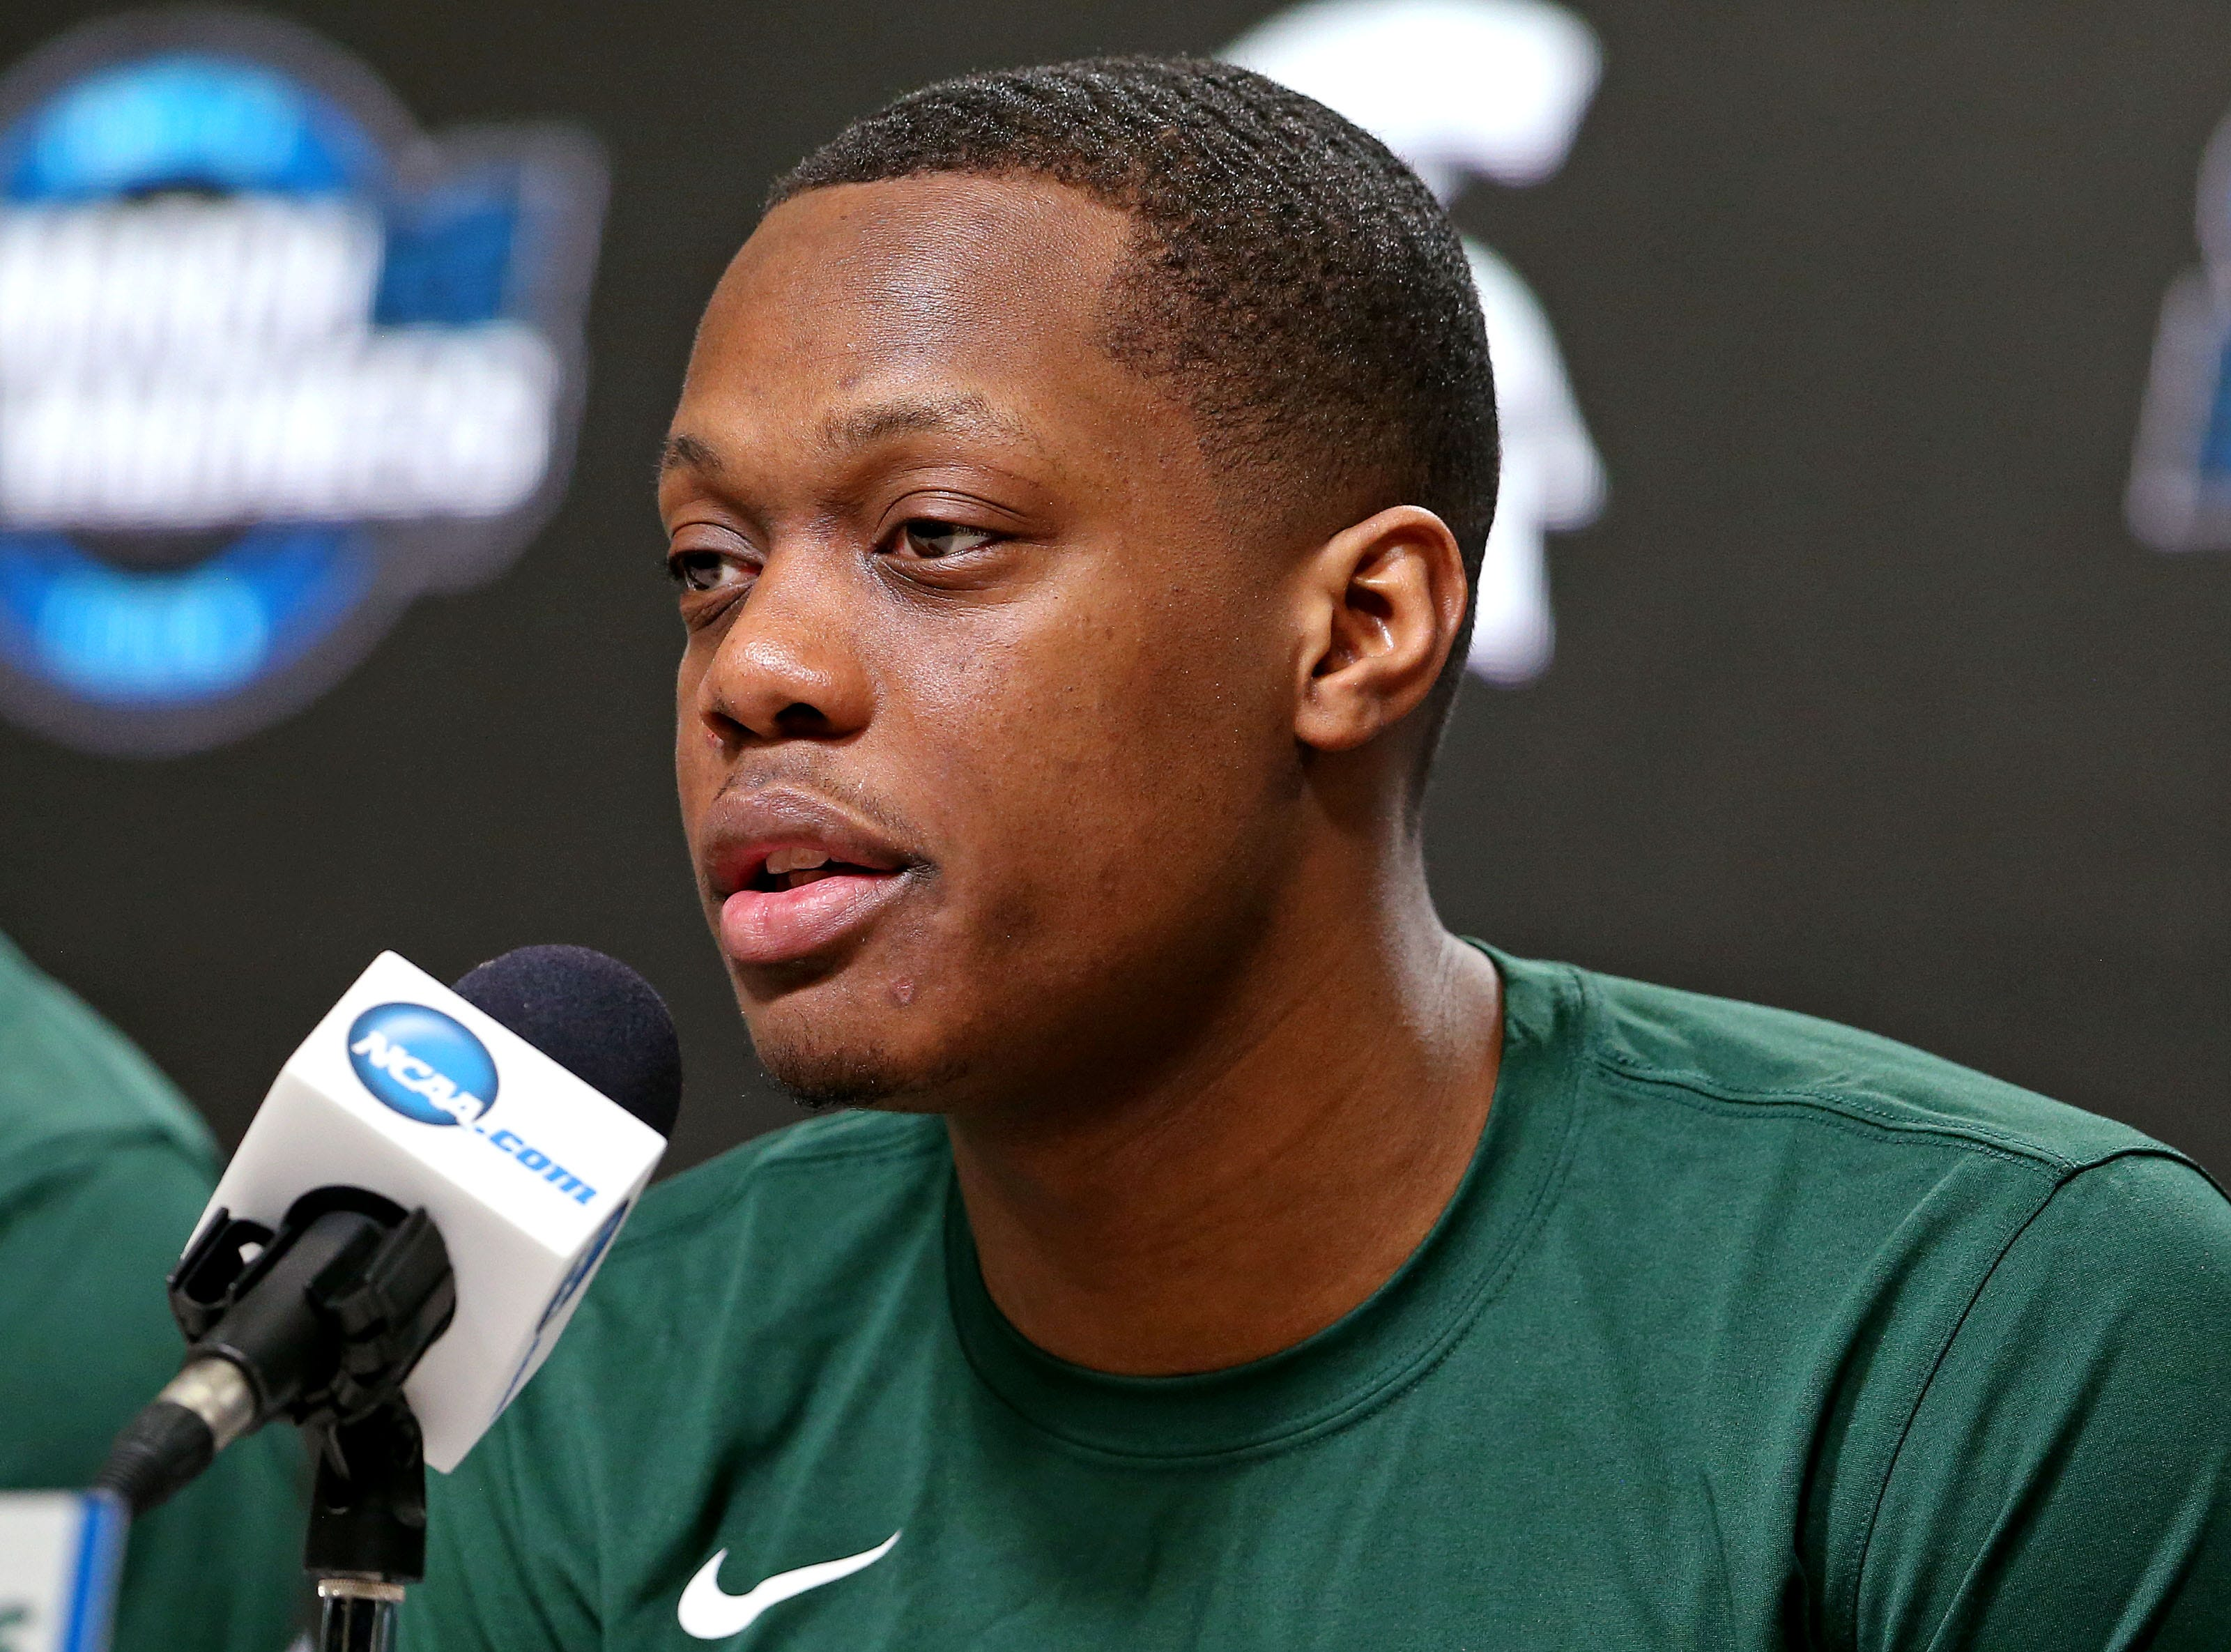 Mar 28, 2019; Washington, DC, USA; Michigan State Spartans guard Cassius Winston (5) speaks in a press conference during practice for the east regional of the 2019 NCAA Tournament at Capital One Arena. Mandatory Credit: Peter Casey-USA TODAY Sports